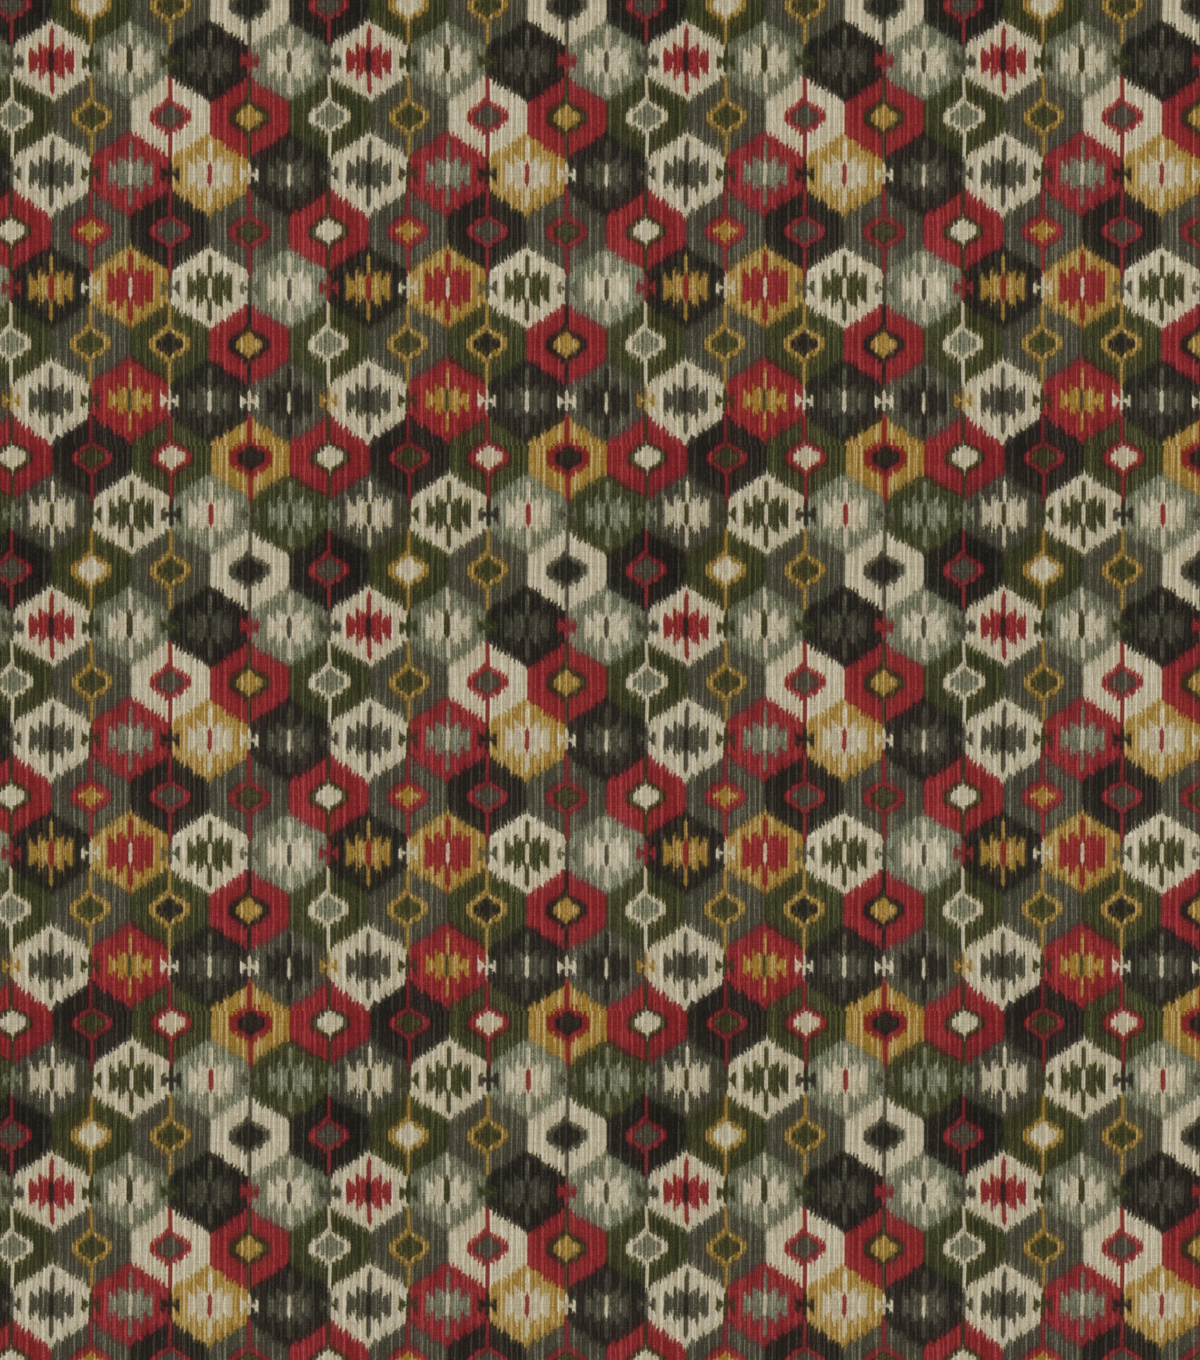 Home Decor 8x8 Fabric Swatch-Swavelle Millcreek Quality Firework